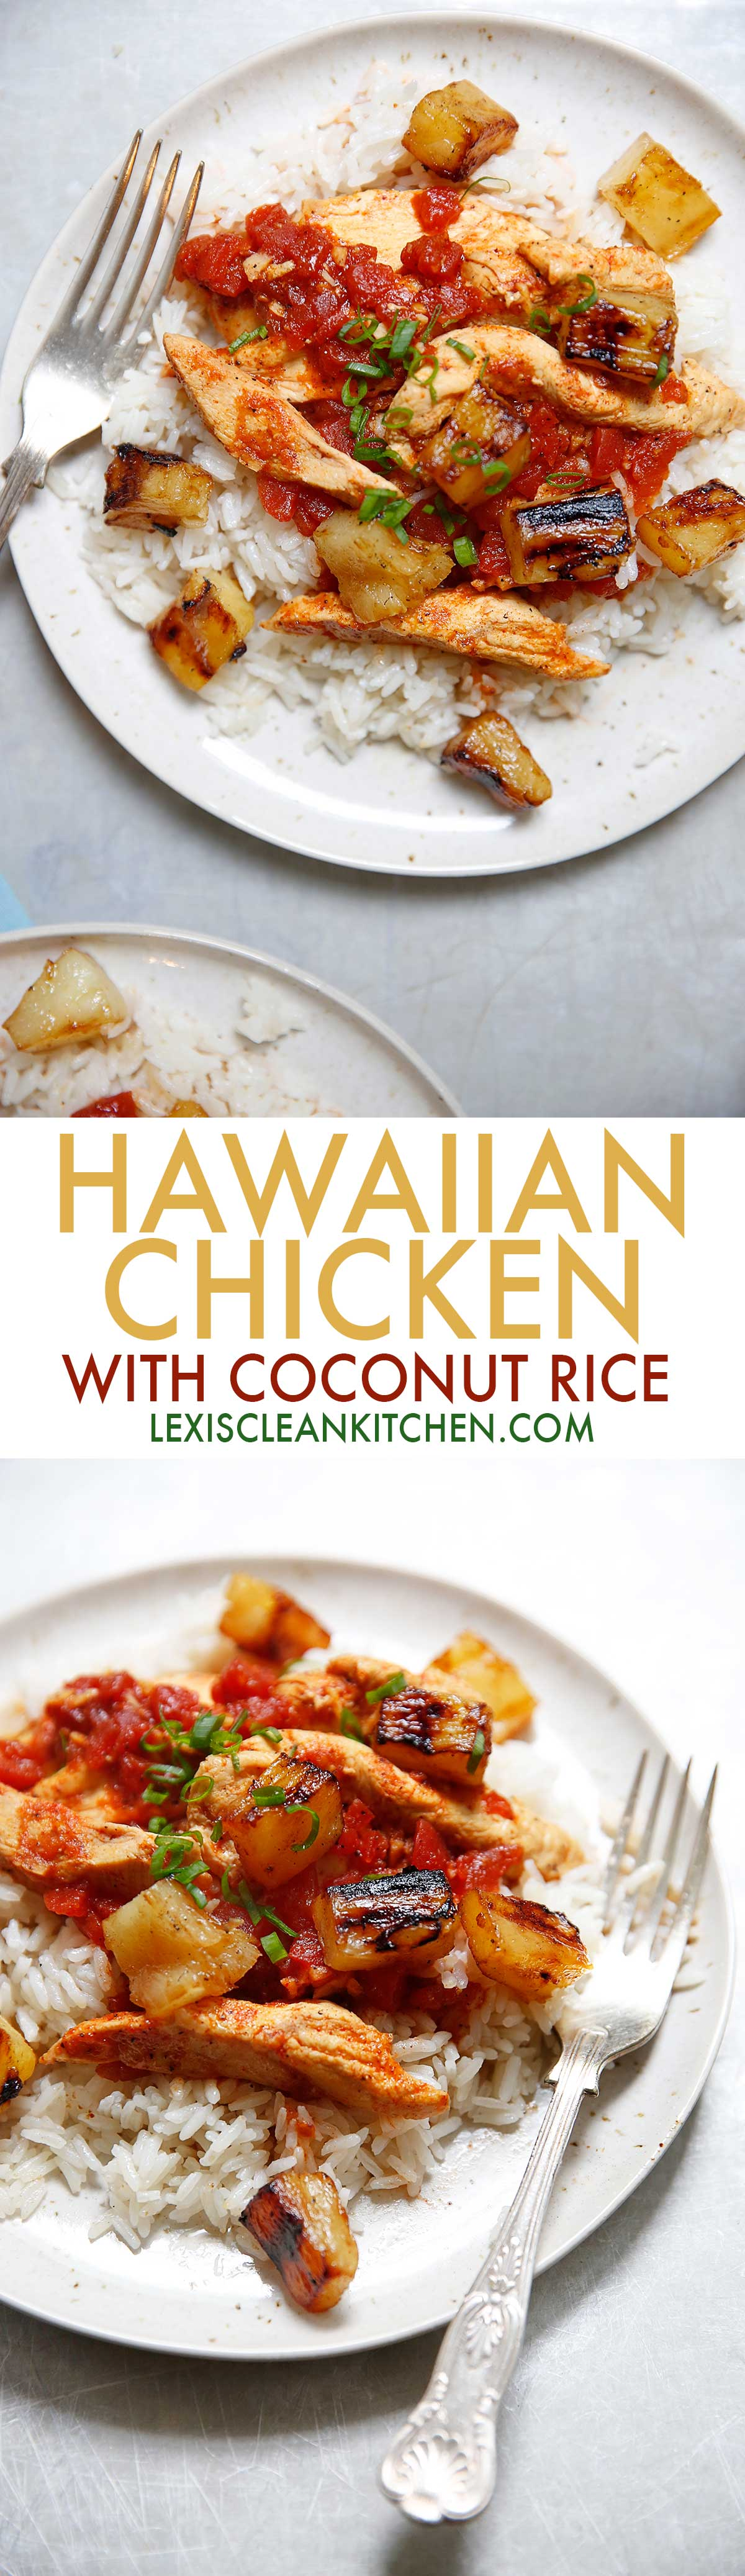 Hawaiian Chicken with Coconut Rice {dairy-free, no refined sugar} | Lexi's Clean Kitchen